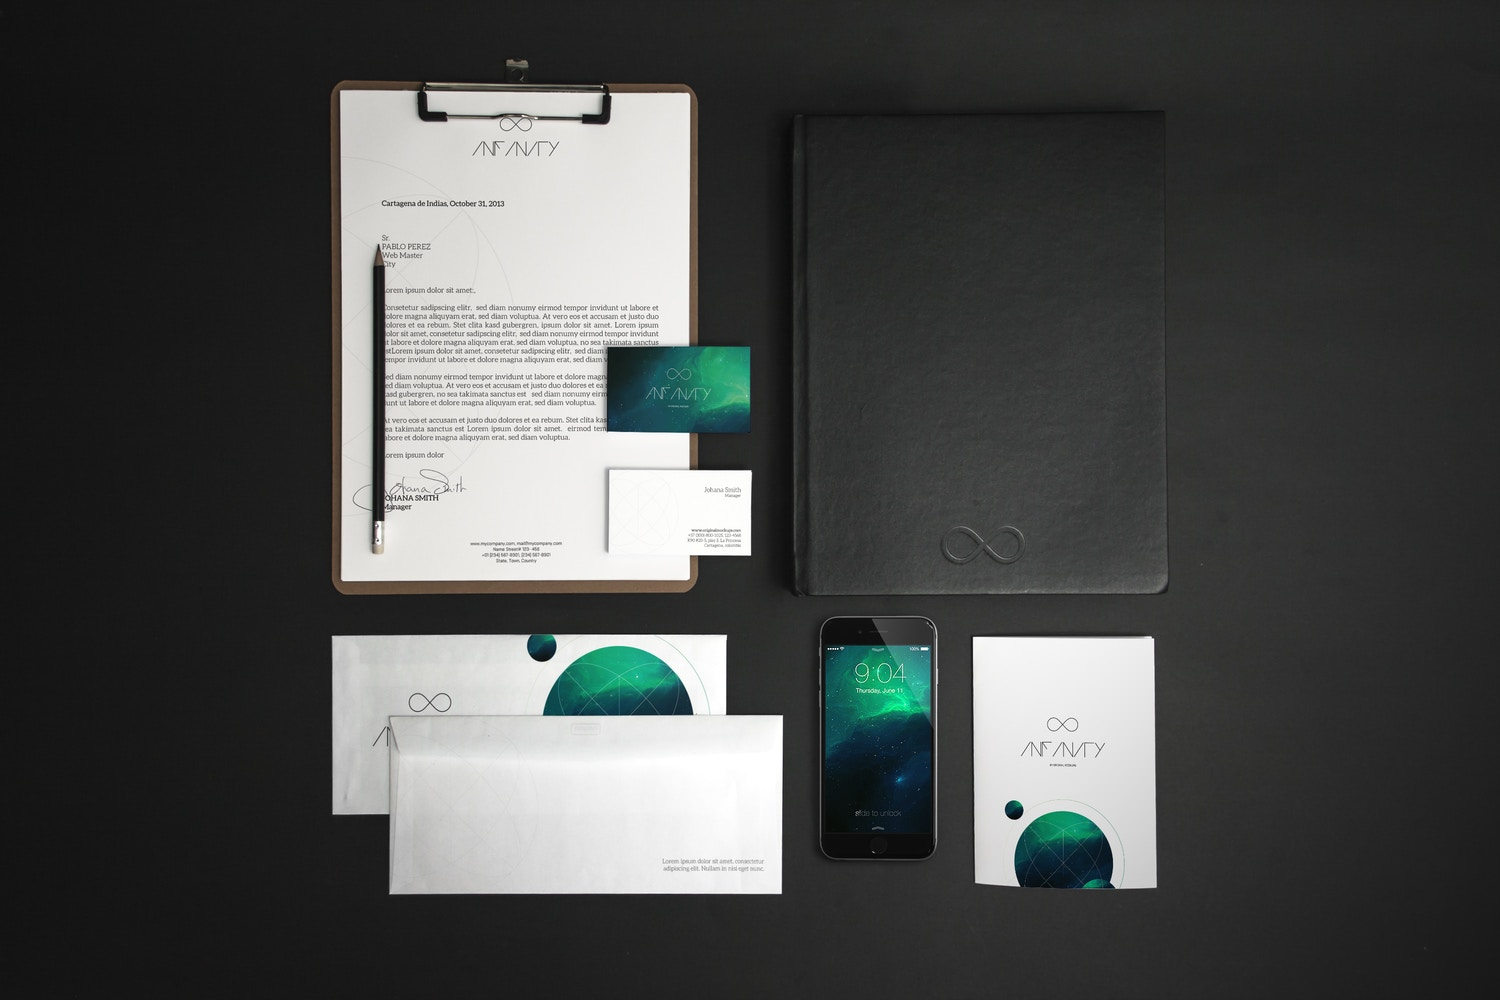 Stationery Mockup 7 by Original Mockups on Original Mockups